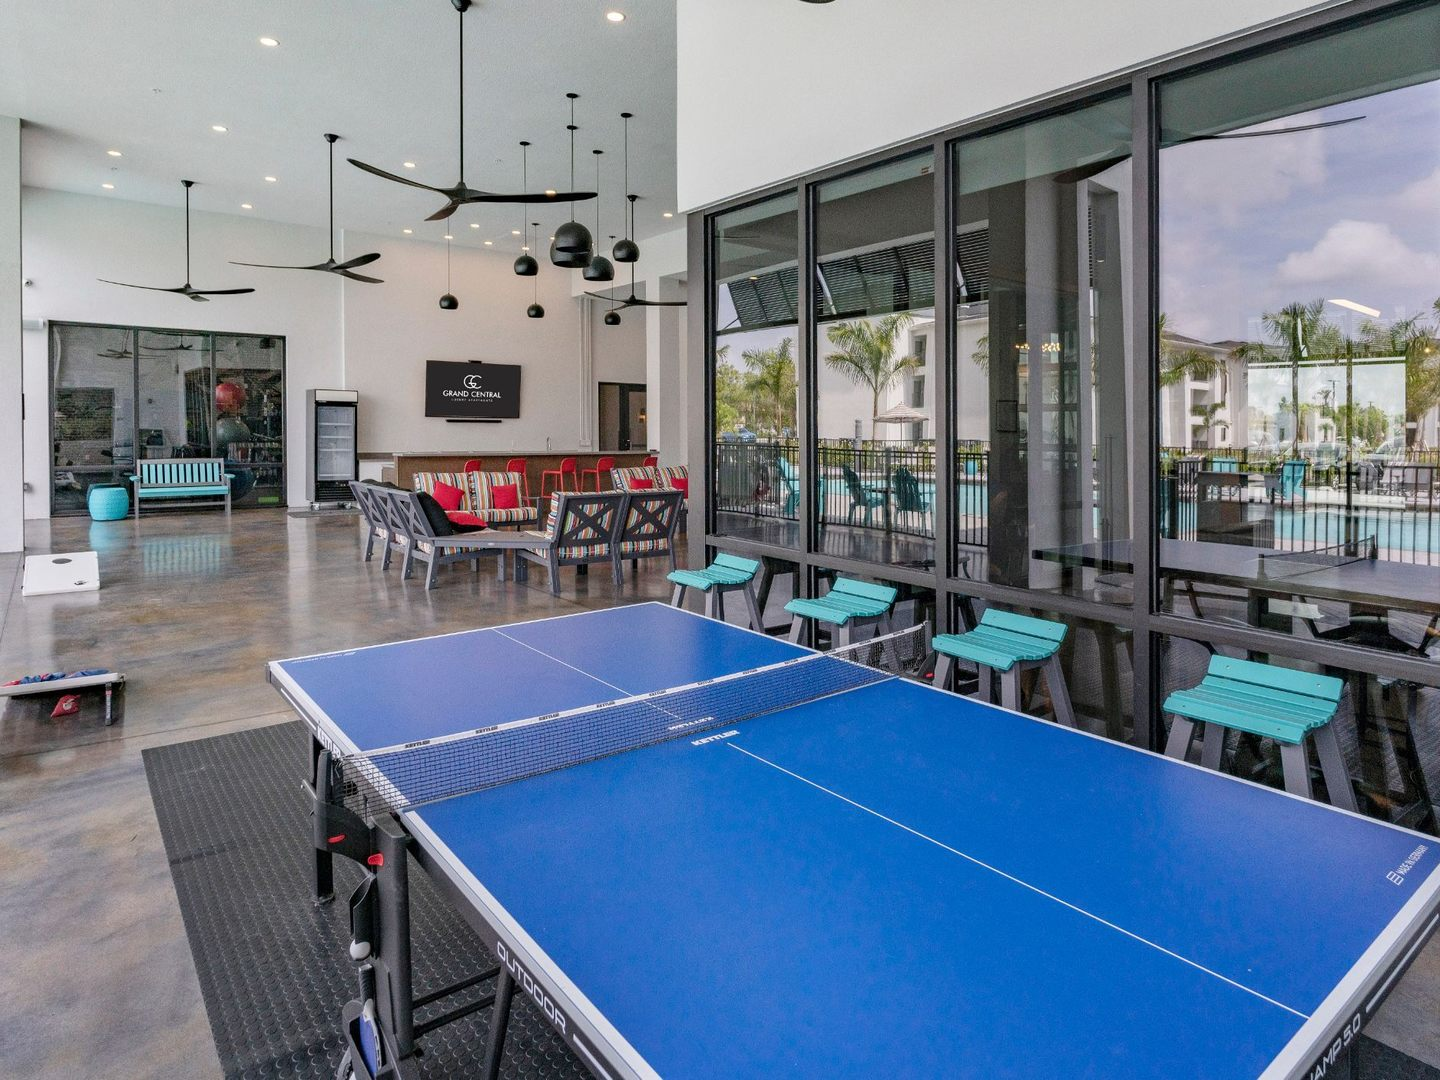 Ping pong table in clubhouse